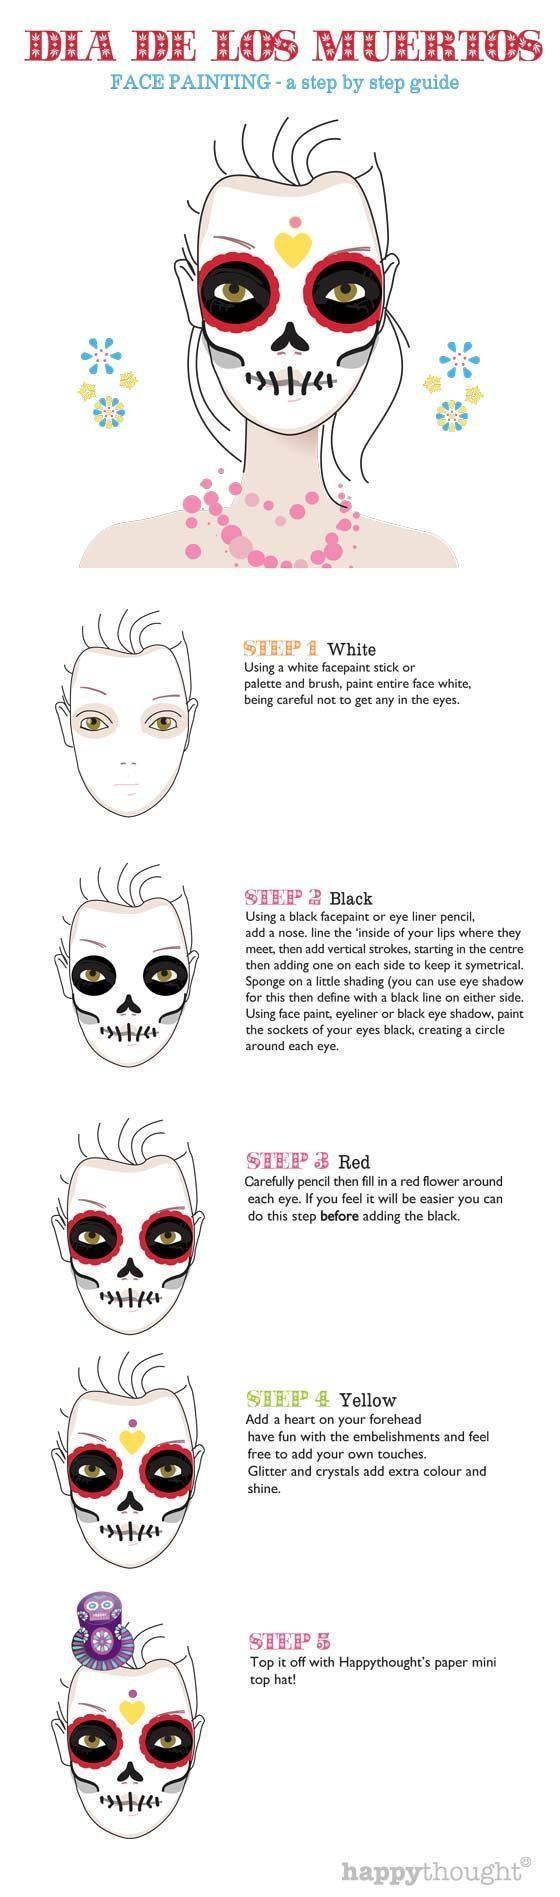 10488 best face painting ideas images on pinterest artistic make turn heads at any day of the dead or dia de los muertos celebrations baditri Images